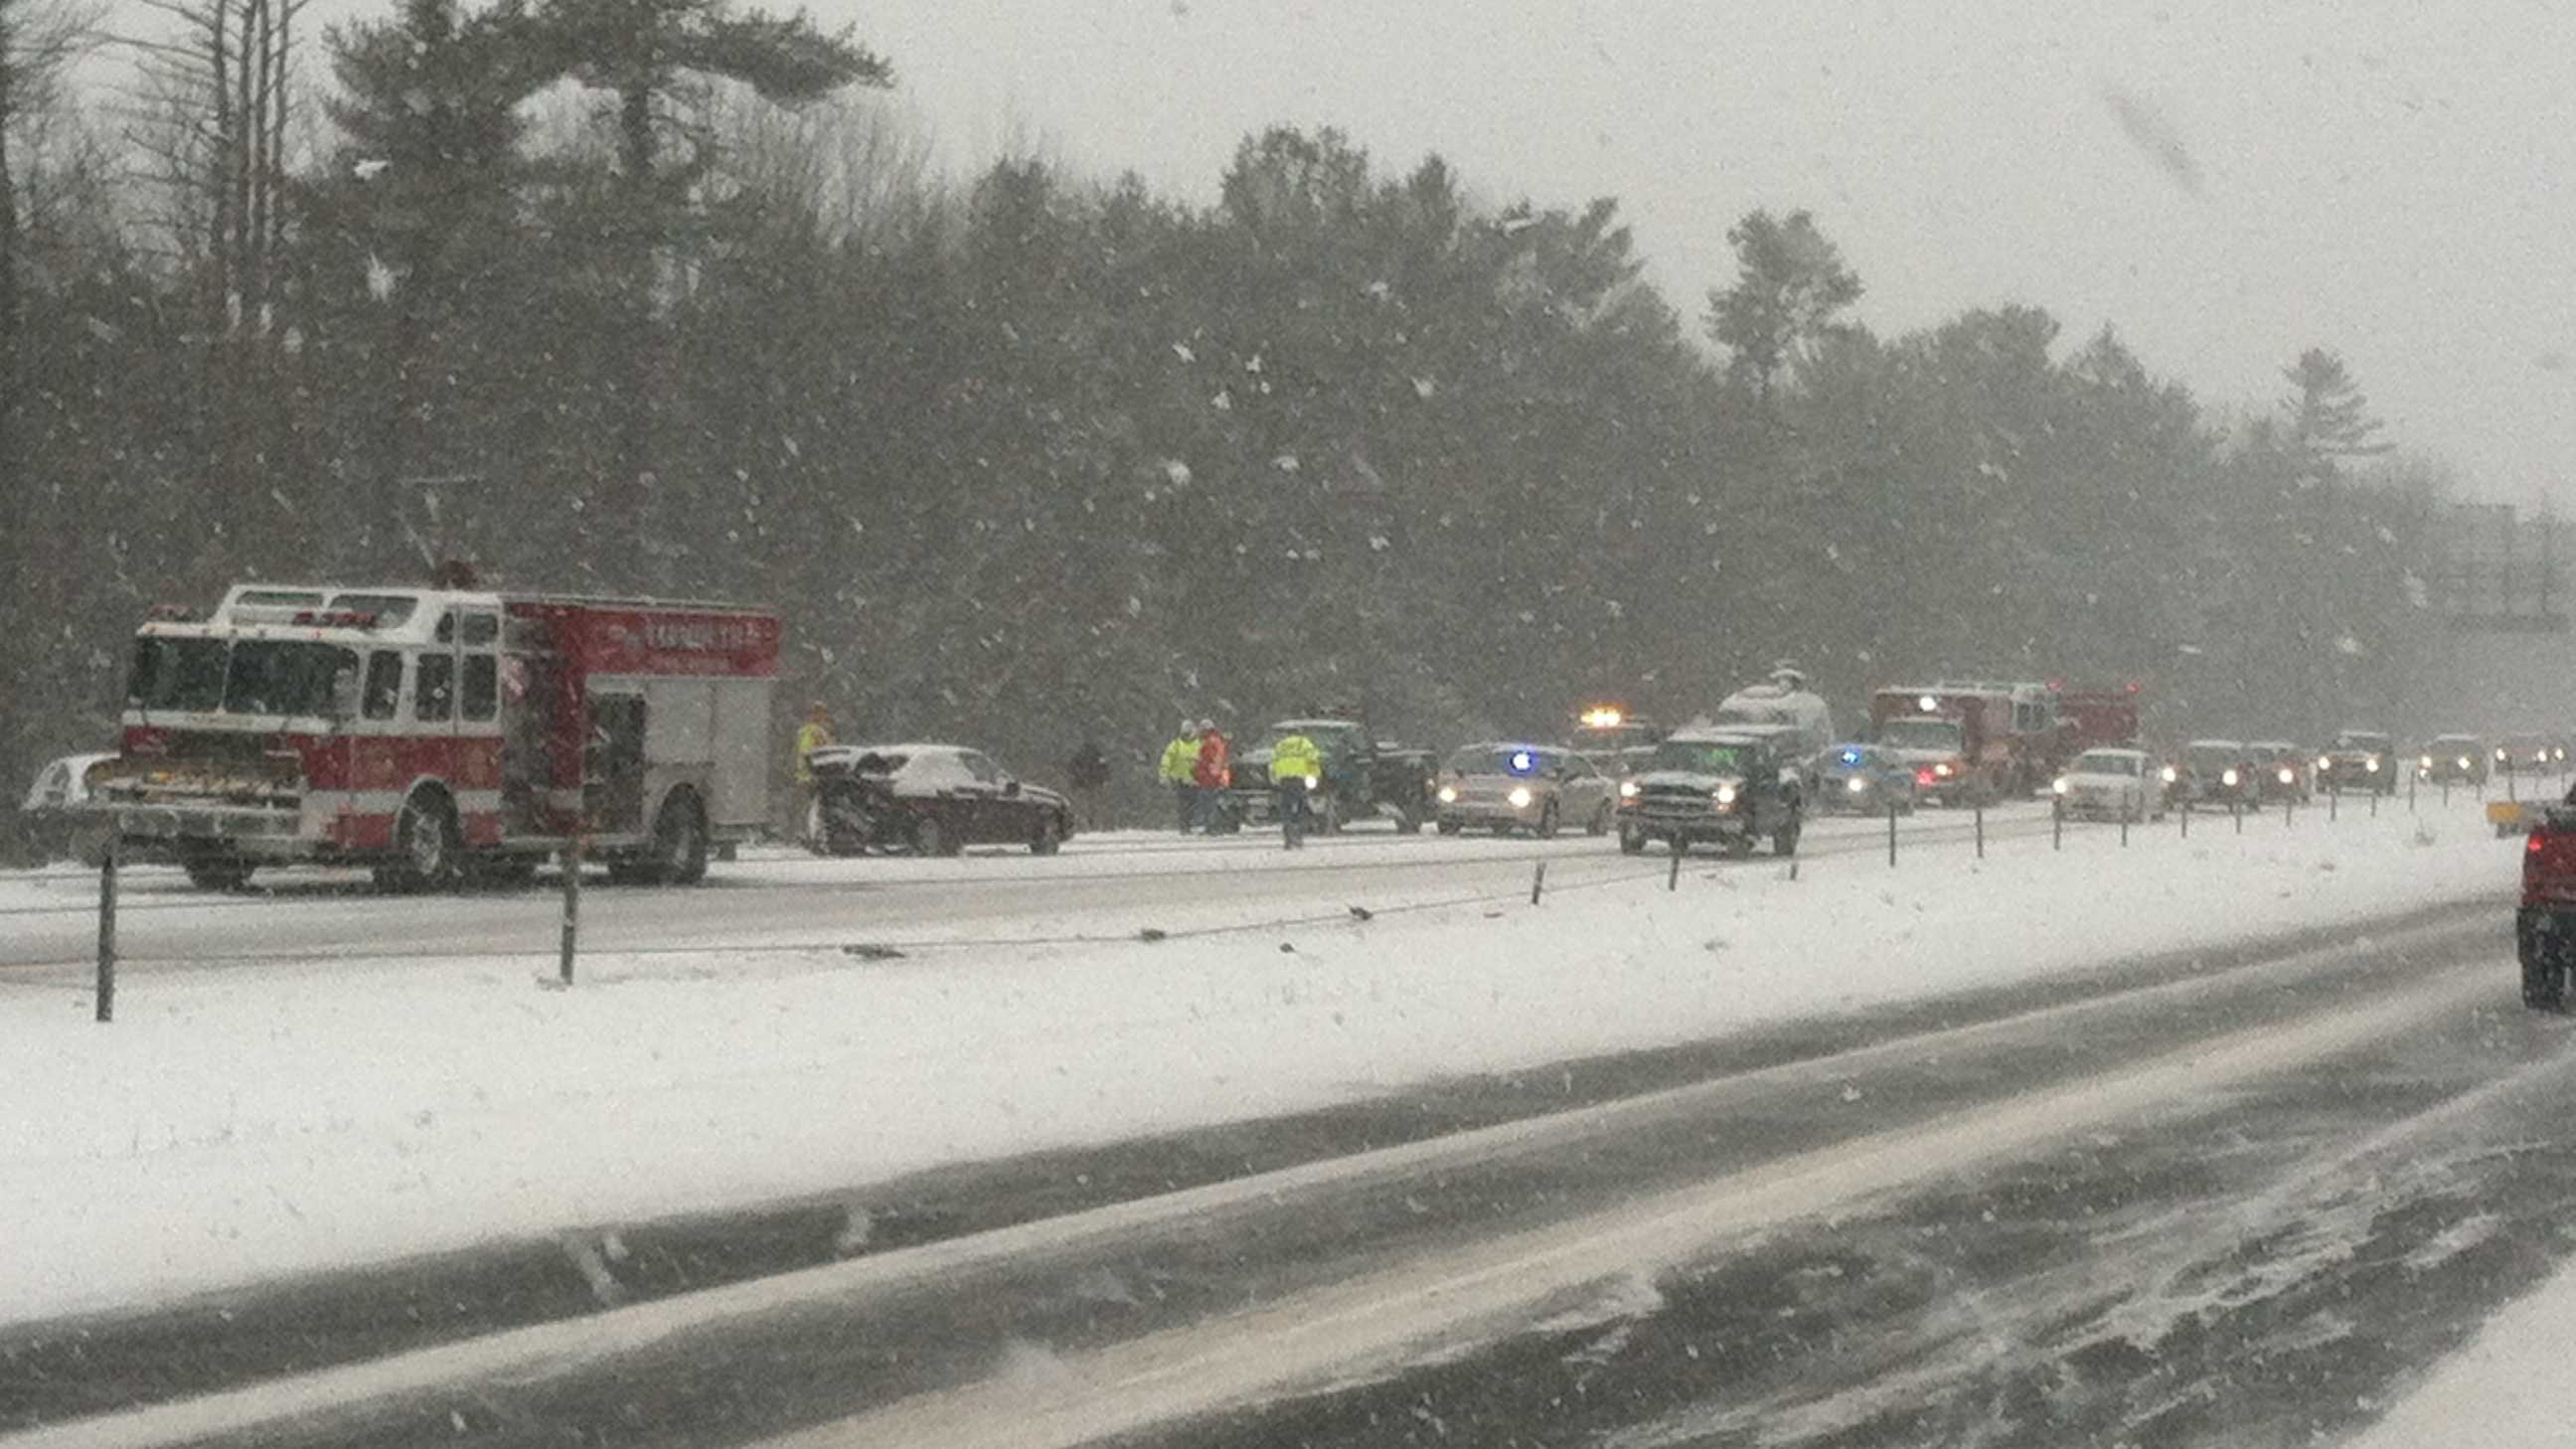 A 19 car pileup shut down a section of Interstate 295 in Cumberland Friday morning.